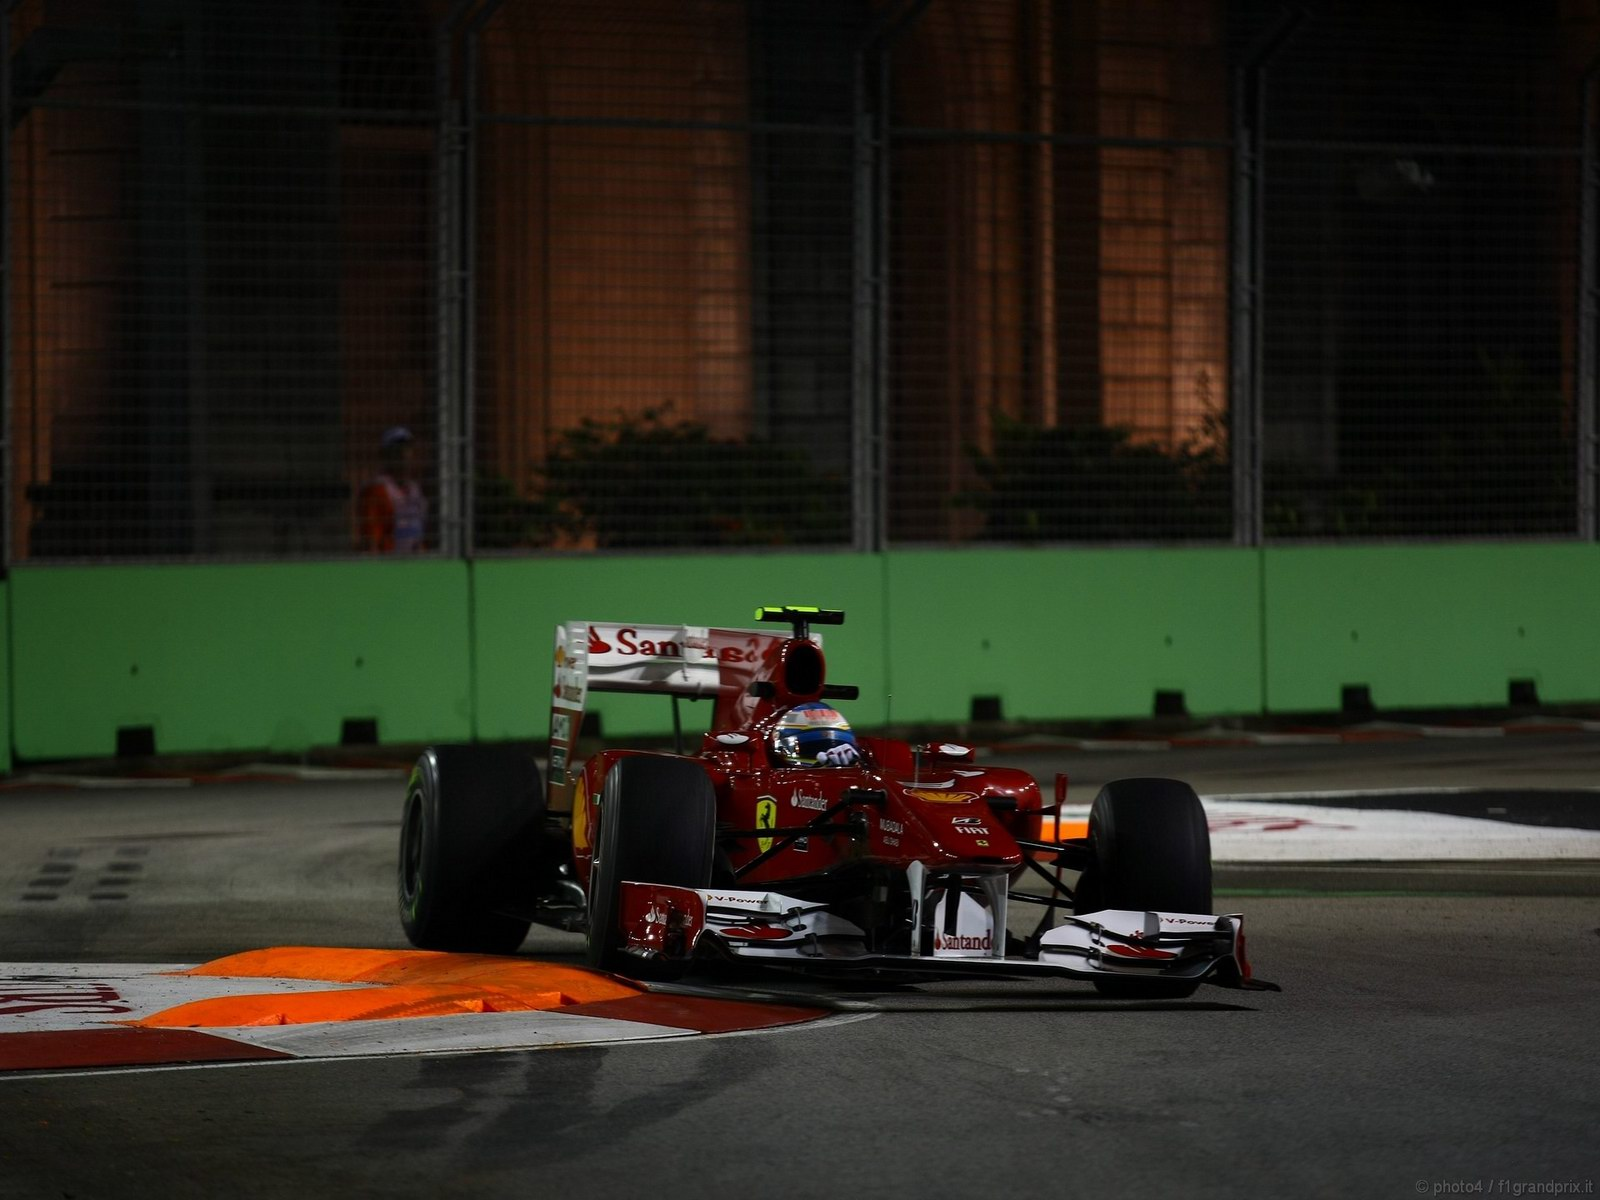 pojazdy - formula1 - gp_singapore_wallpapers_000066